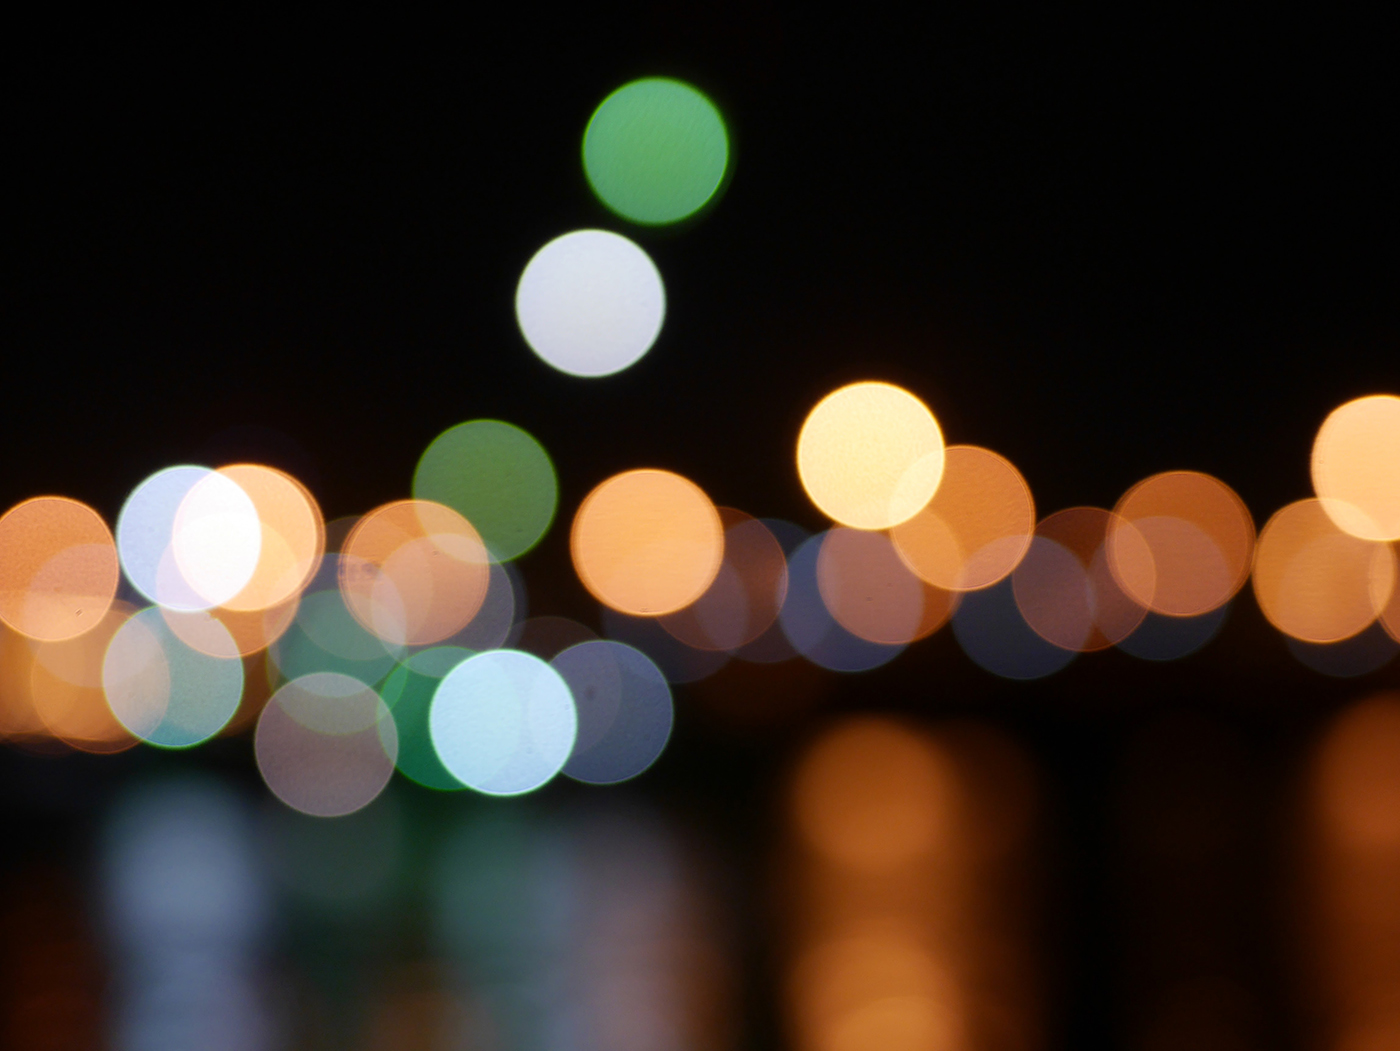 Wallpaper of the Week - Bokeh Tribute